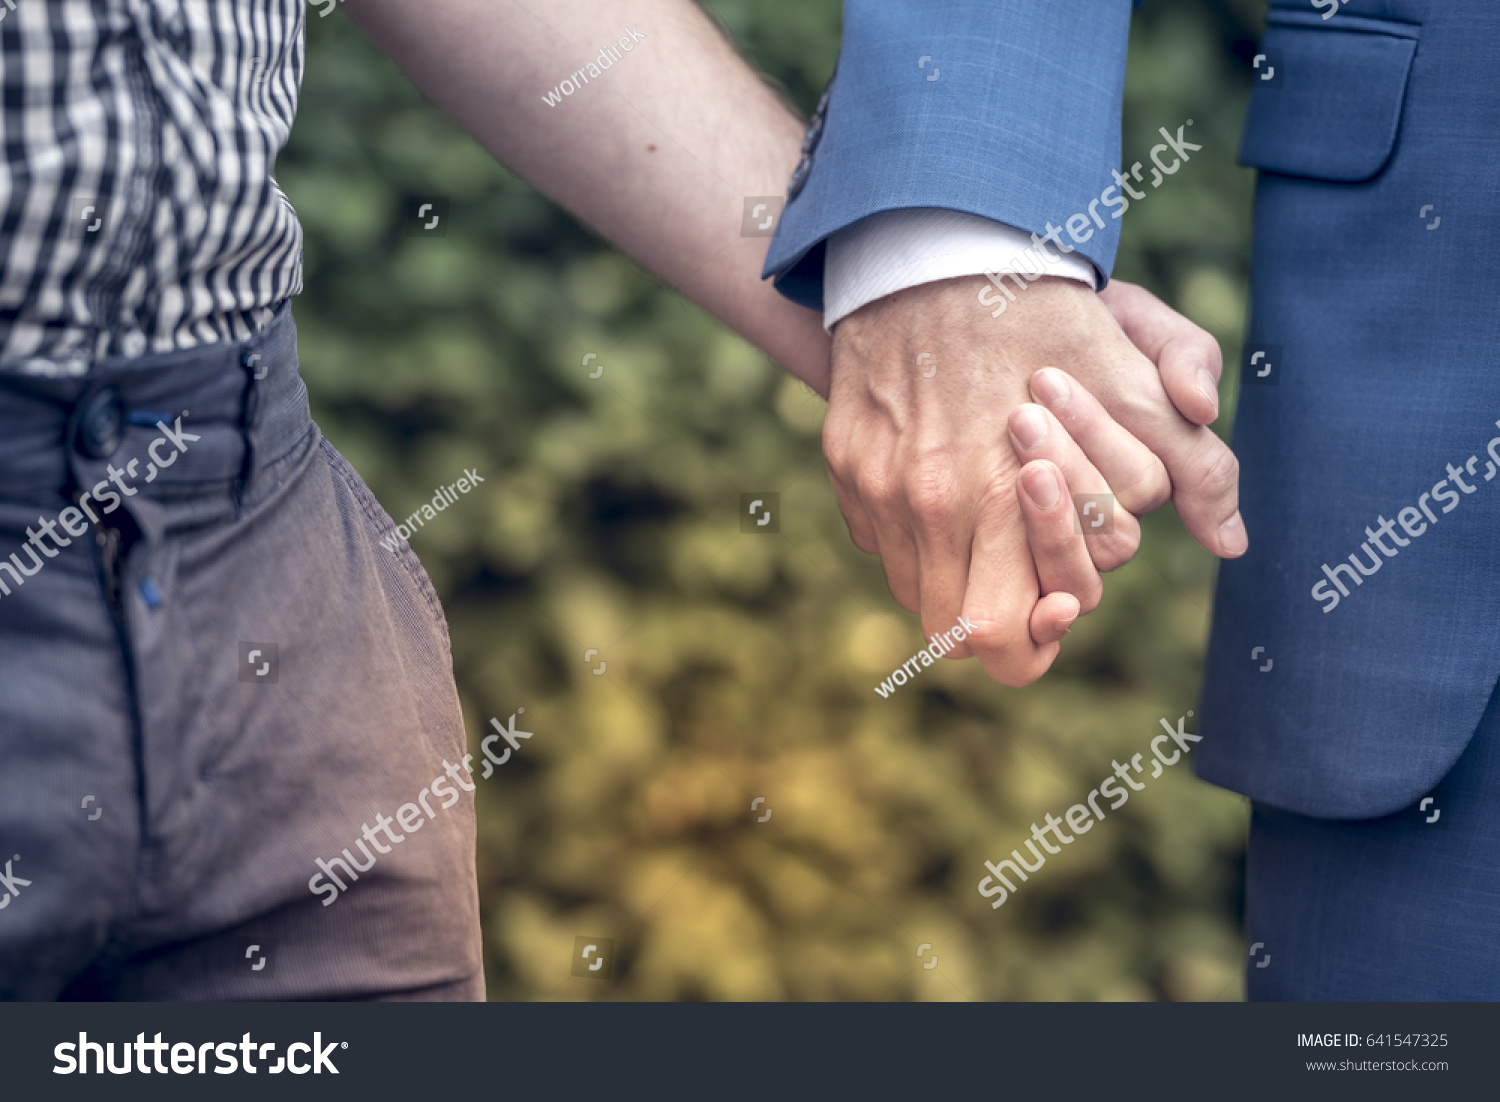 Holding hands on first date